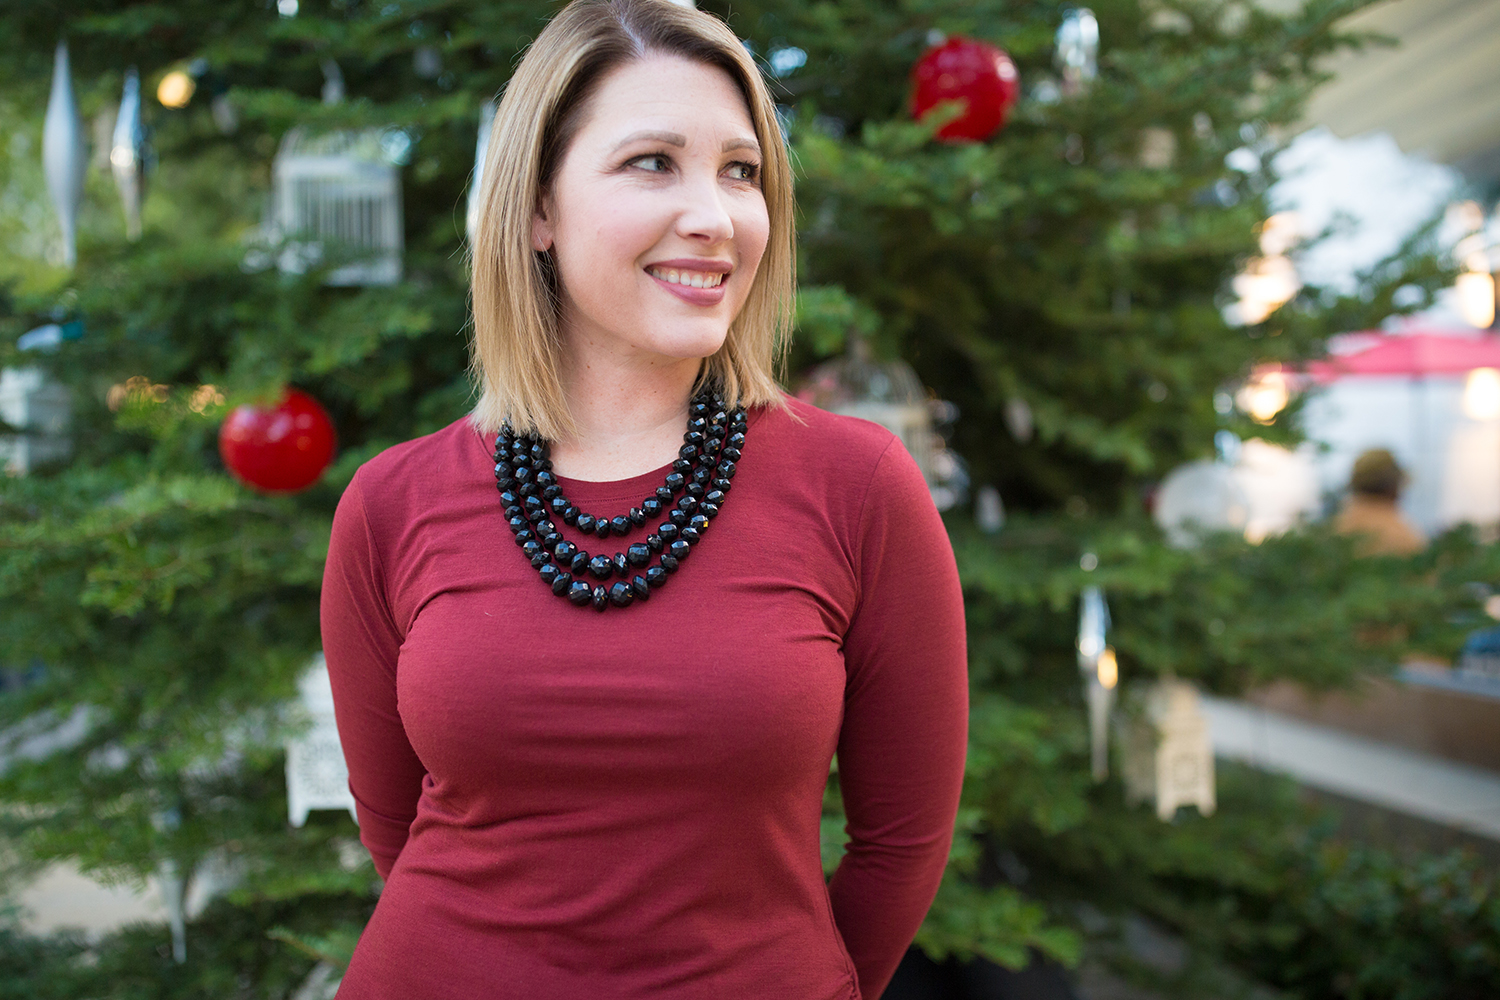 Holiday Dress Ideas? I love adding this necklace to a simple sheath dress!